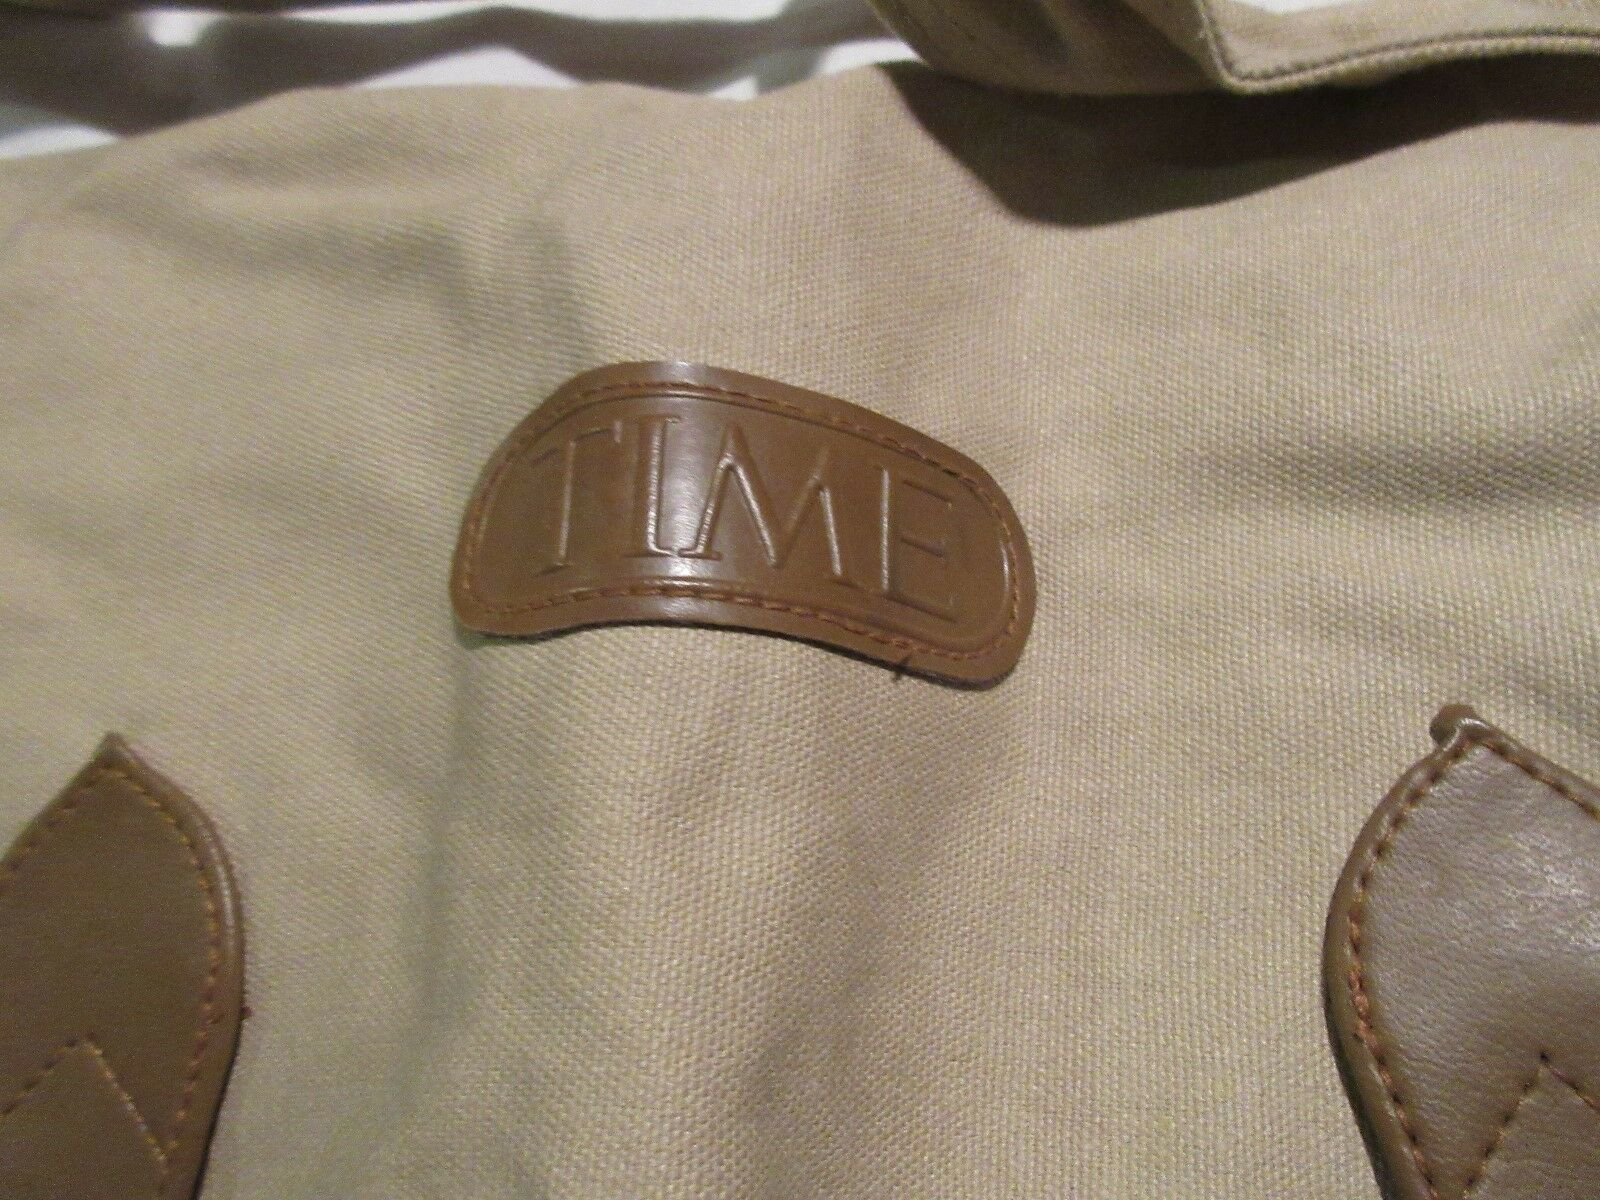 Time Magazine, Promotional Bag, Tan and Brown , Vintage